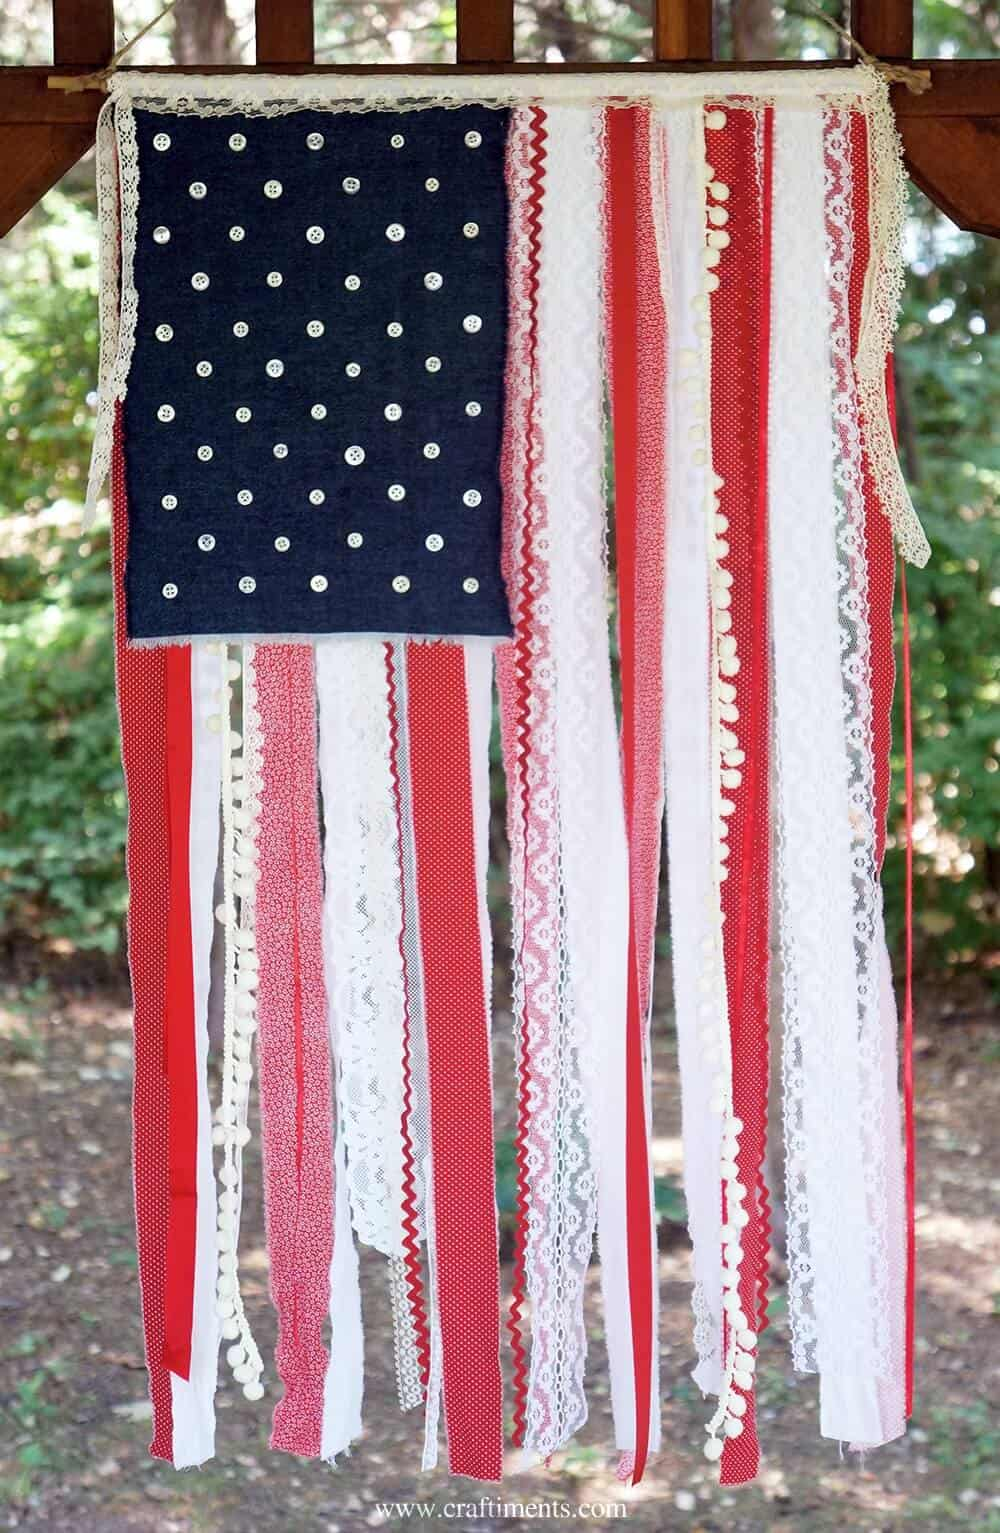 Lace American Flag Craftiments.com